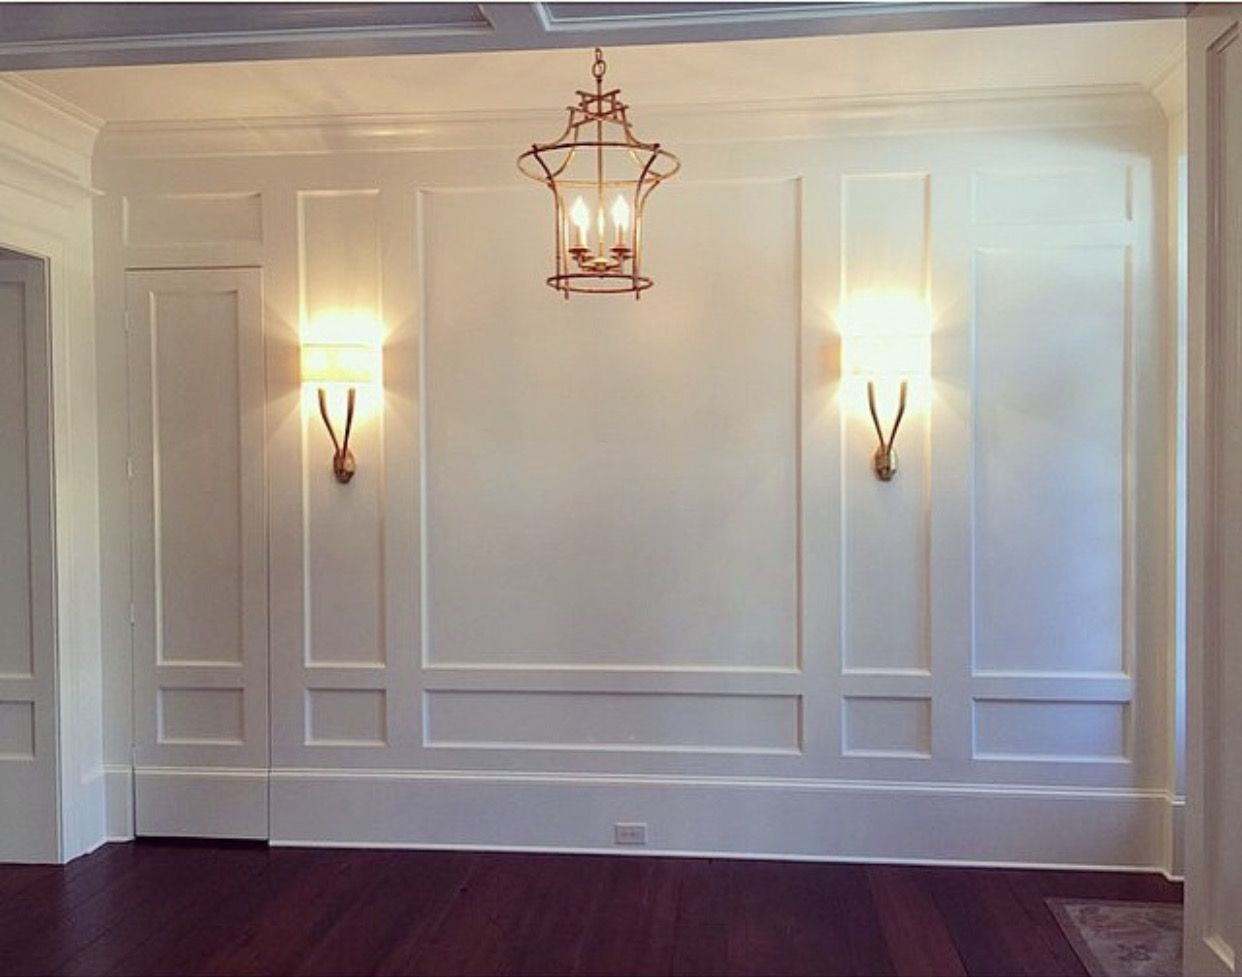 This would be a beautiful Master Bedroom  Lighting in